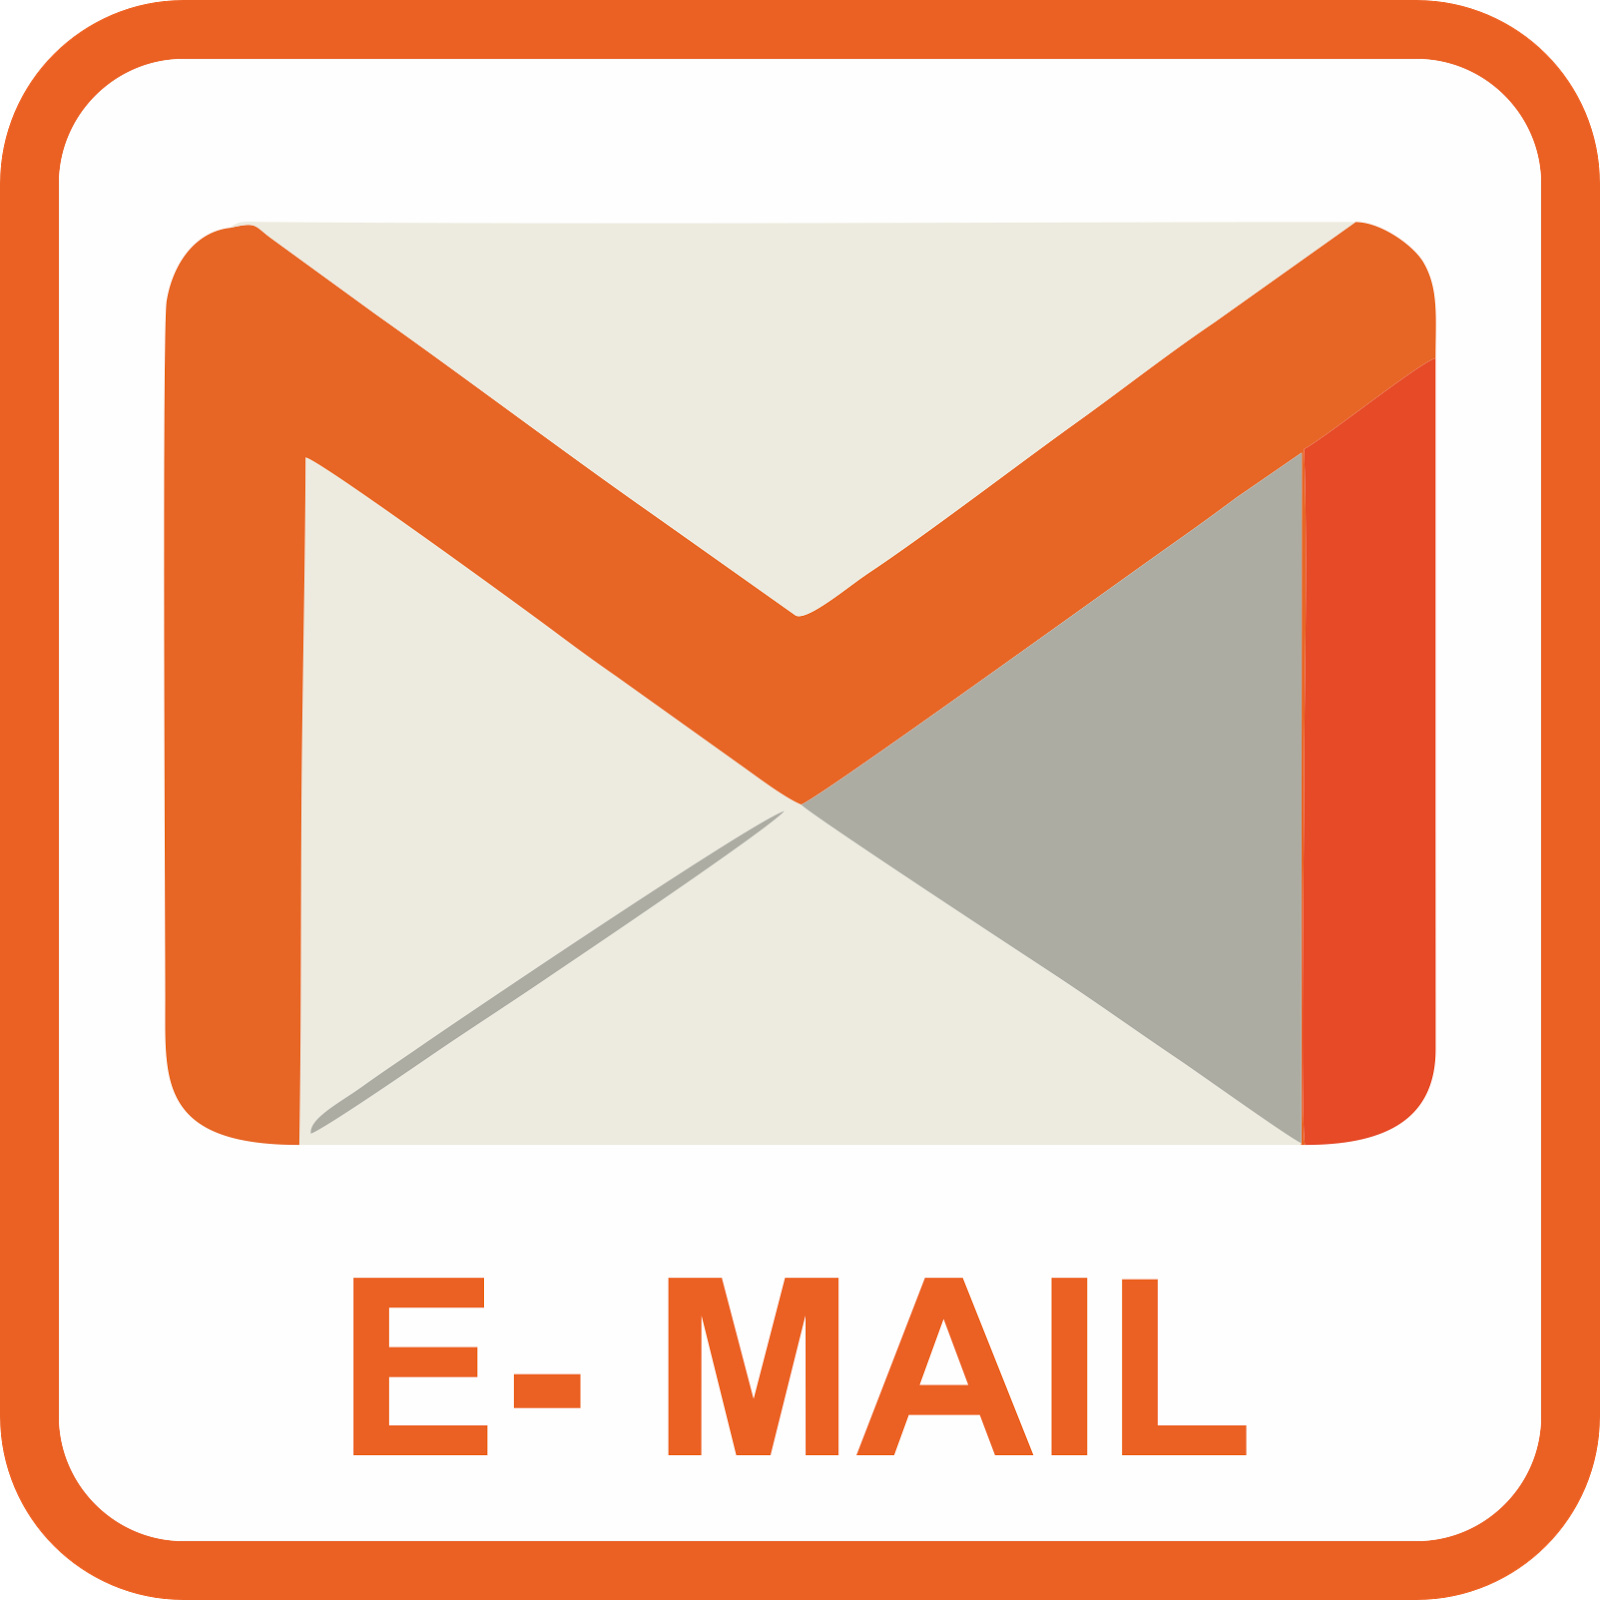 Mail PNG HD Transparent Mail HD.PNG Images..